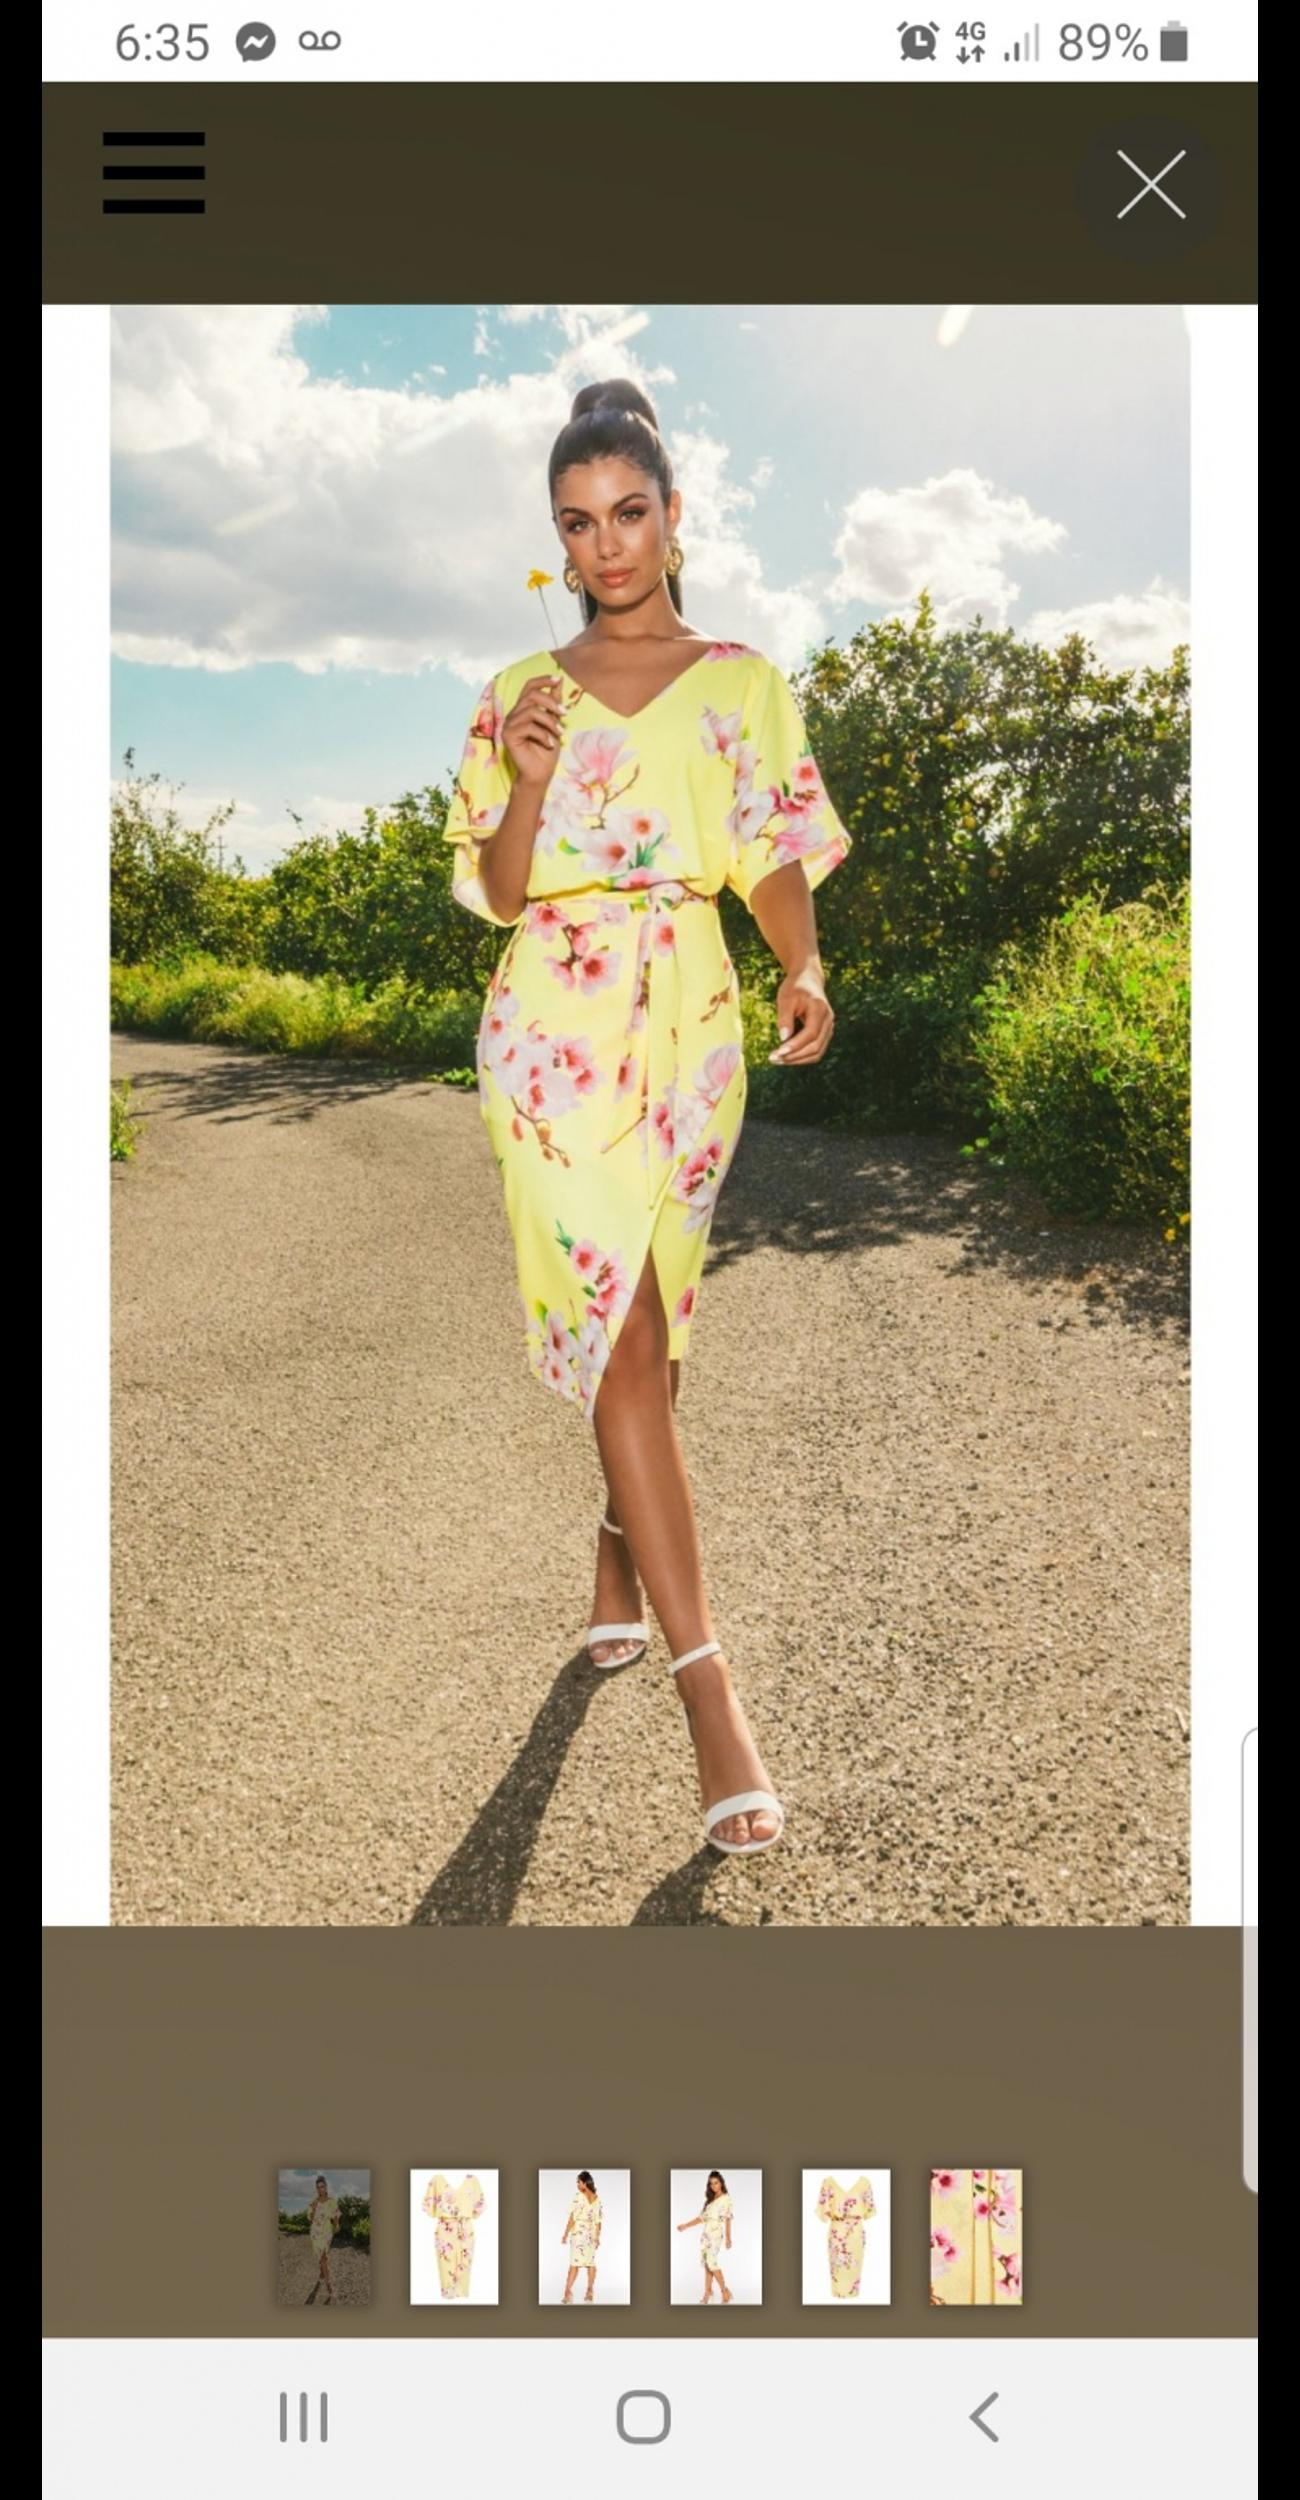 Sam faiers, excellent condition, new out this season, still available in quiz, gorgeous dress size 10